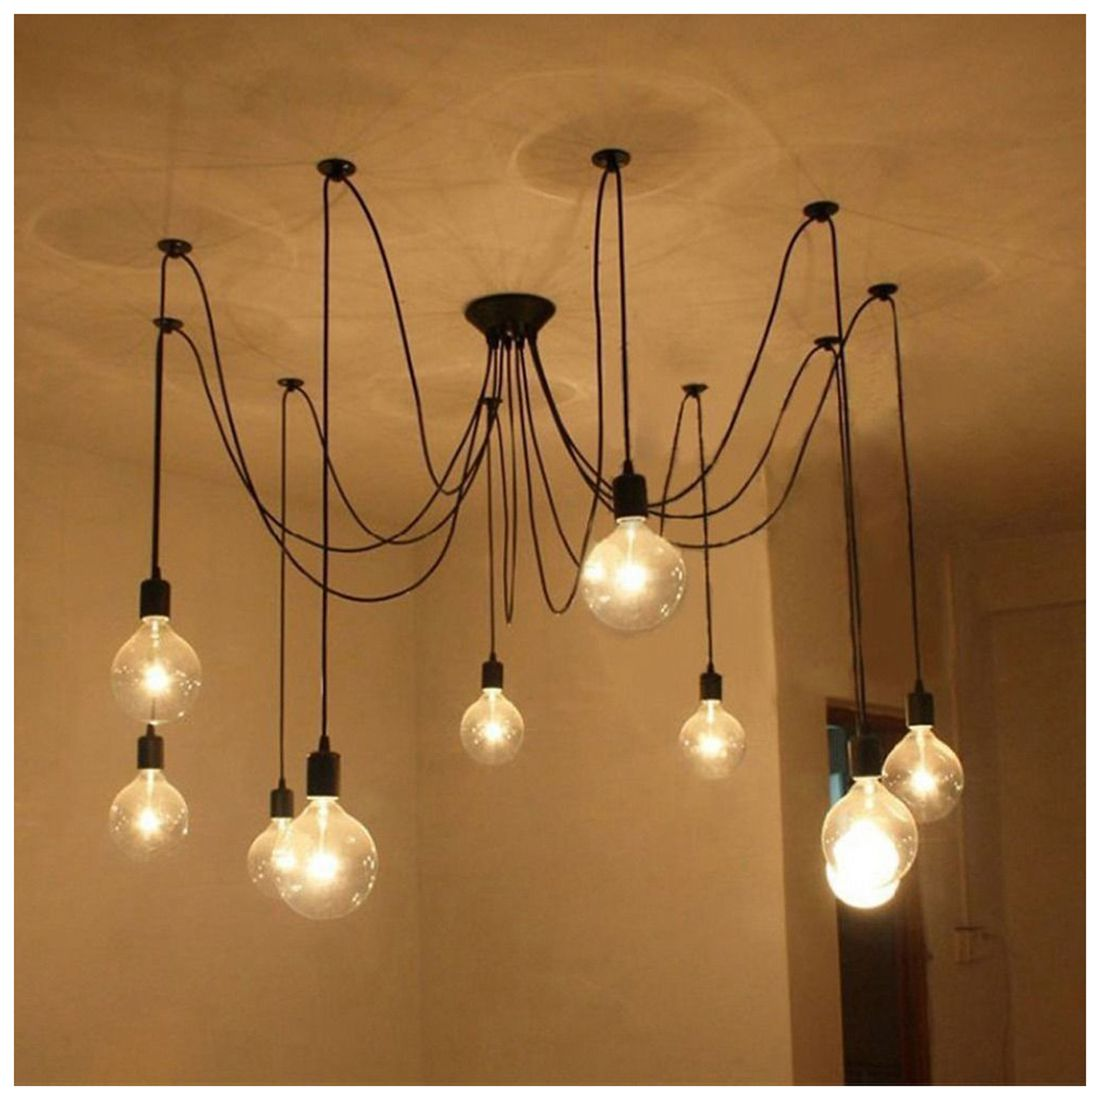 9 Lights E27 DIY Ceiling Spider Pendant Lamp Shade Light Antique Classic Adjustable Retro Chandelier Dining HallLighting Fixture mordern nordic retro edison bulb light chandelier vintage loft antique adjustable diy e27 art spider ceiling lamp fixture lights